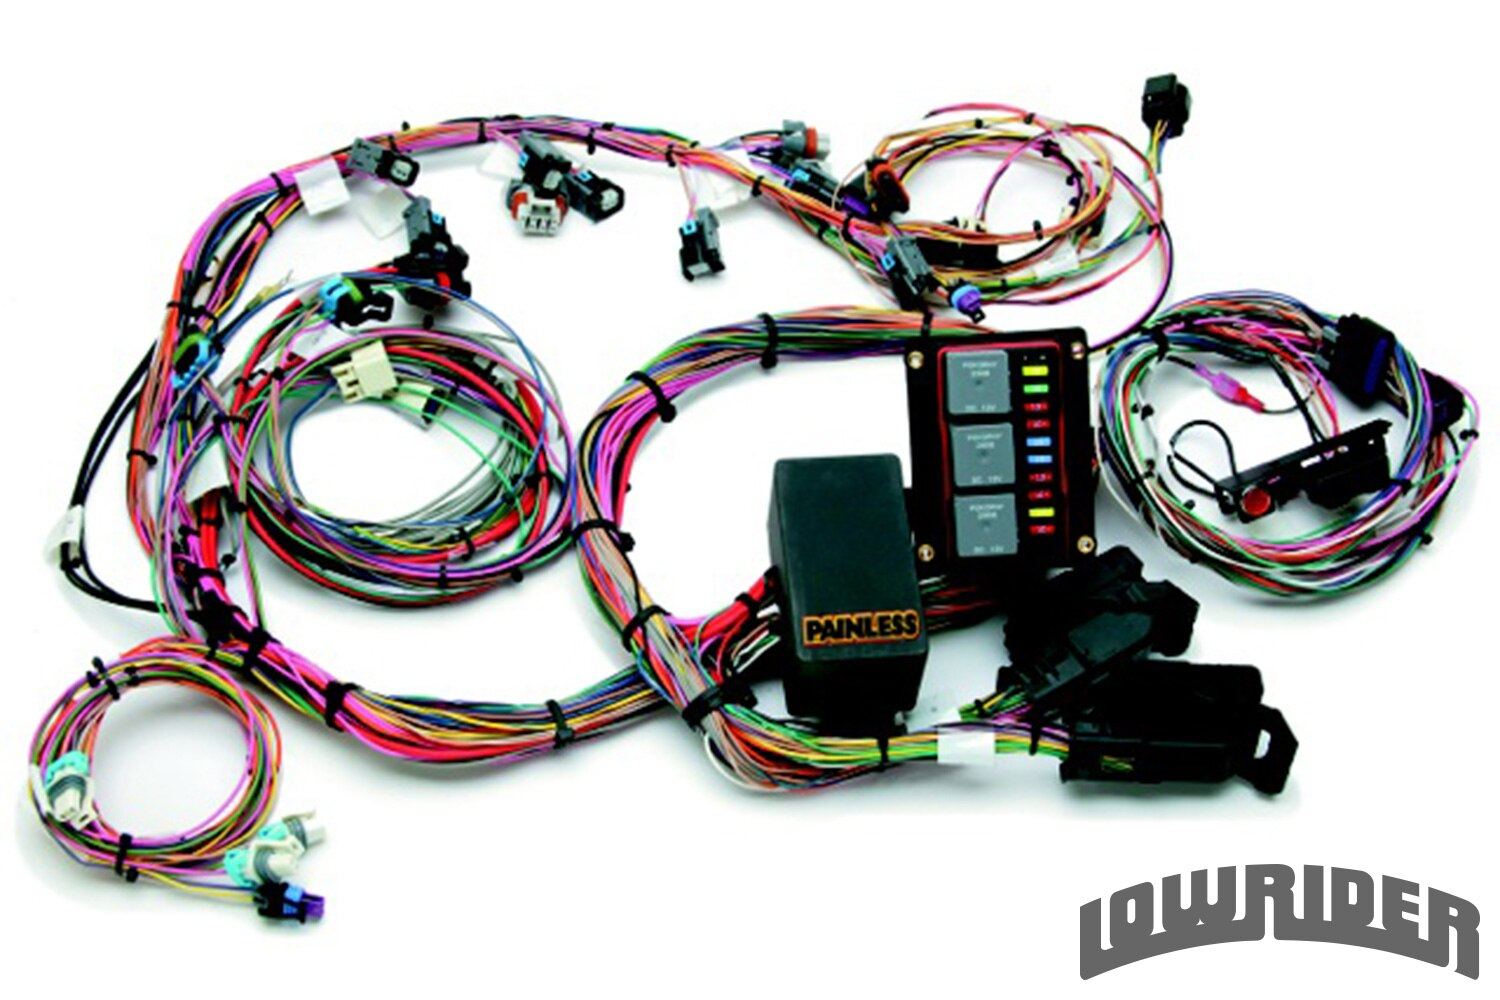 lowrider new products march 2014 painless performance LS harness lowrider new products march 2014 lowrider magazine painless ls wiring harness at bakdesigns.co